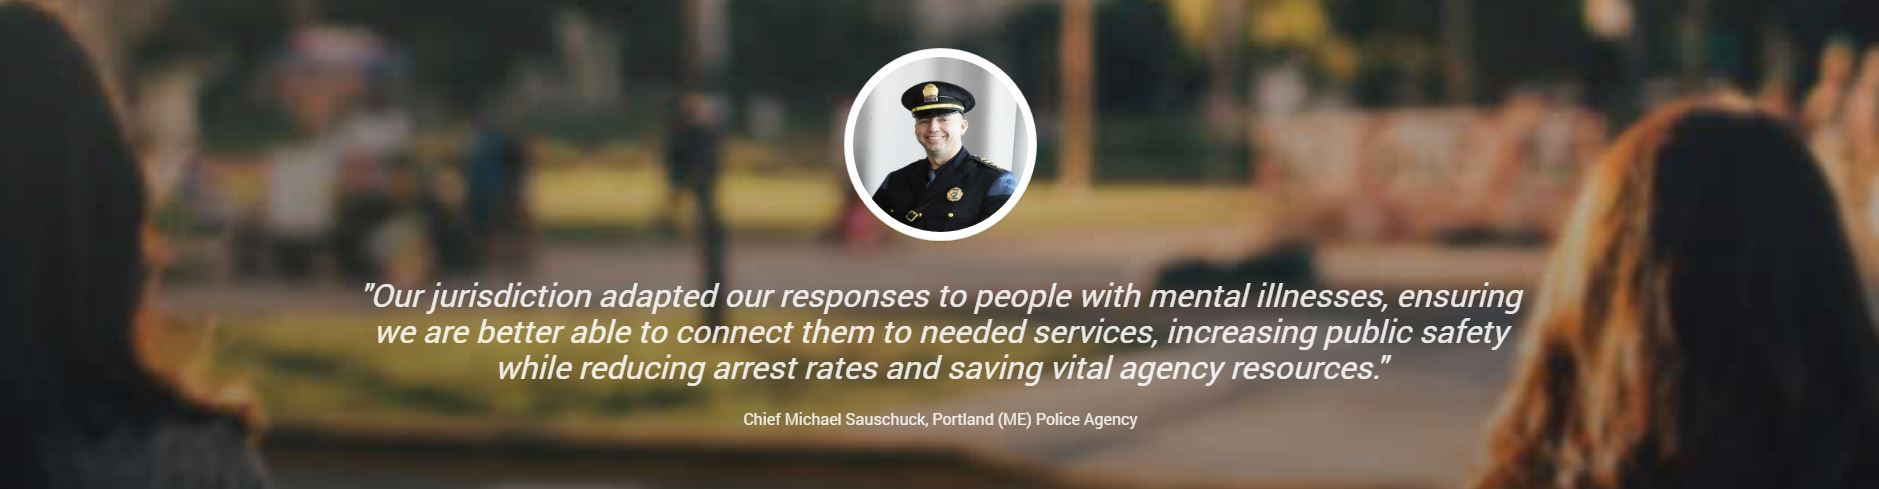 Quote from Chief Michael Sauschuck, Portland (ME) Police Agency